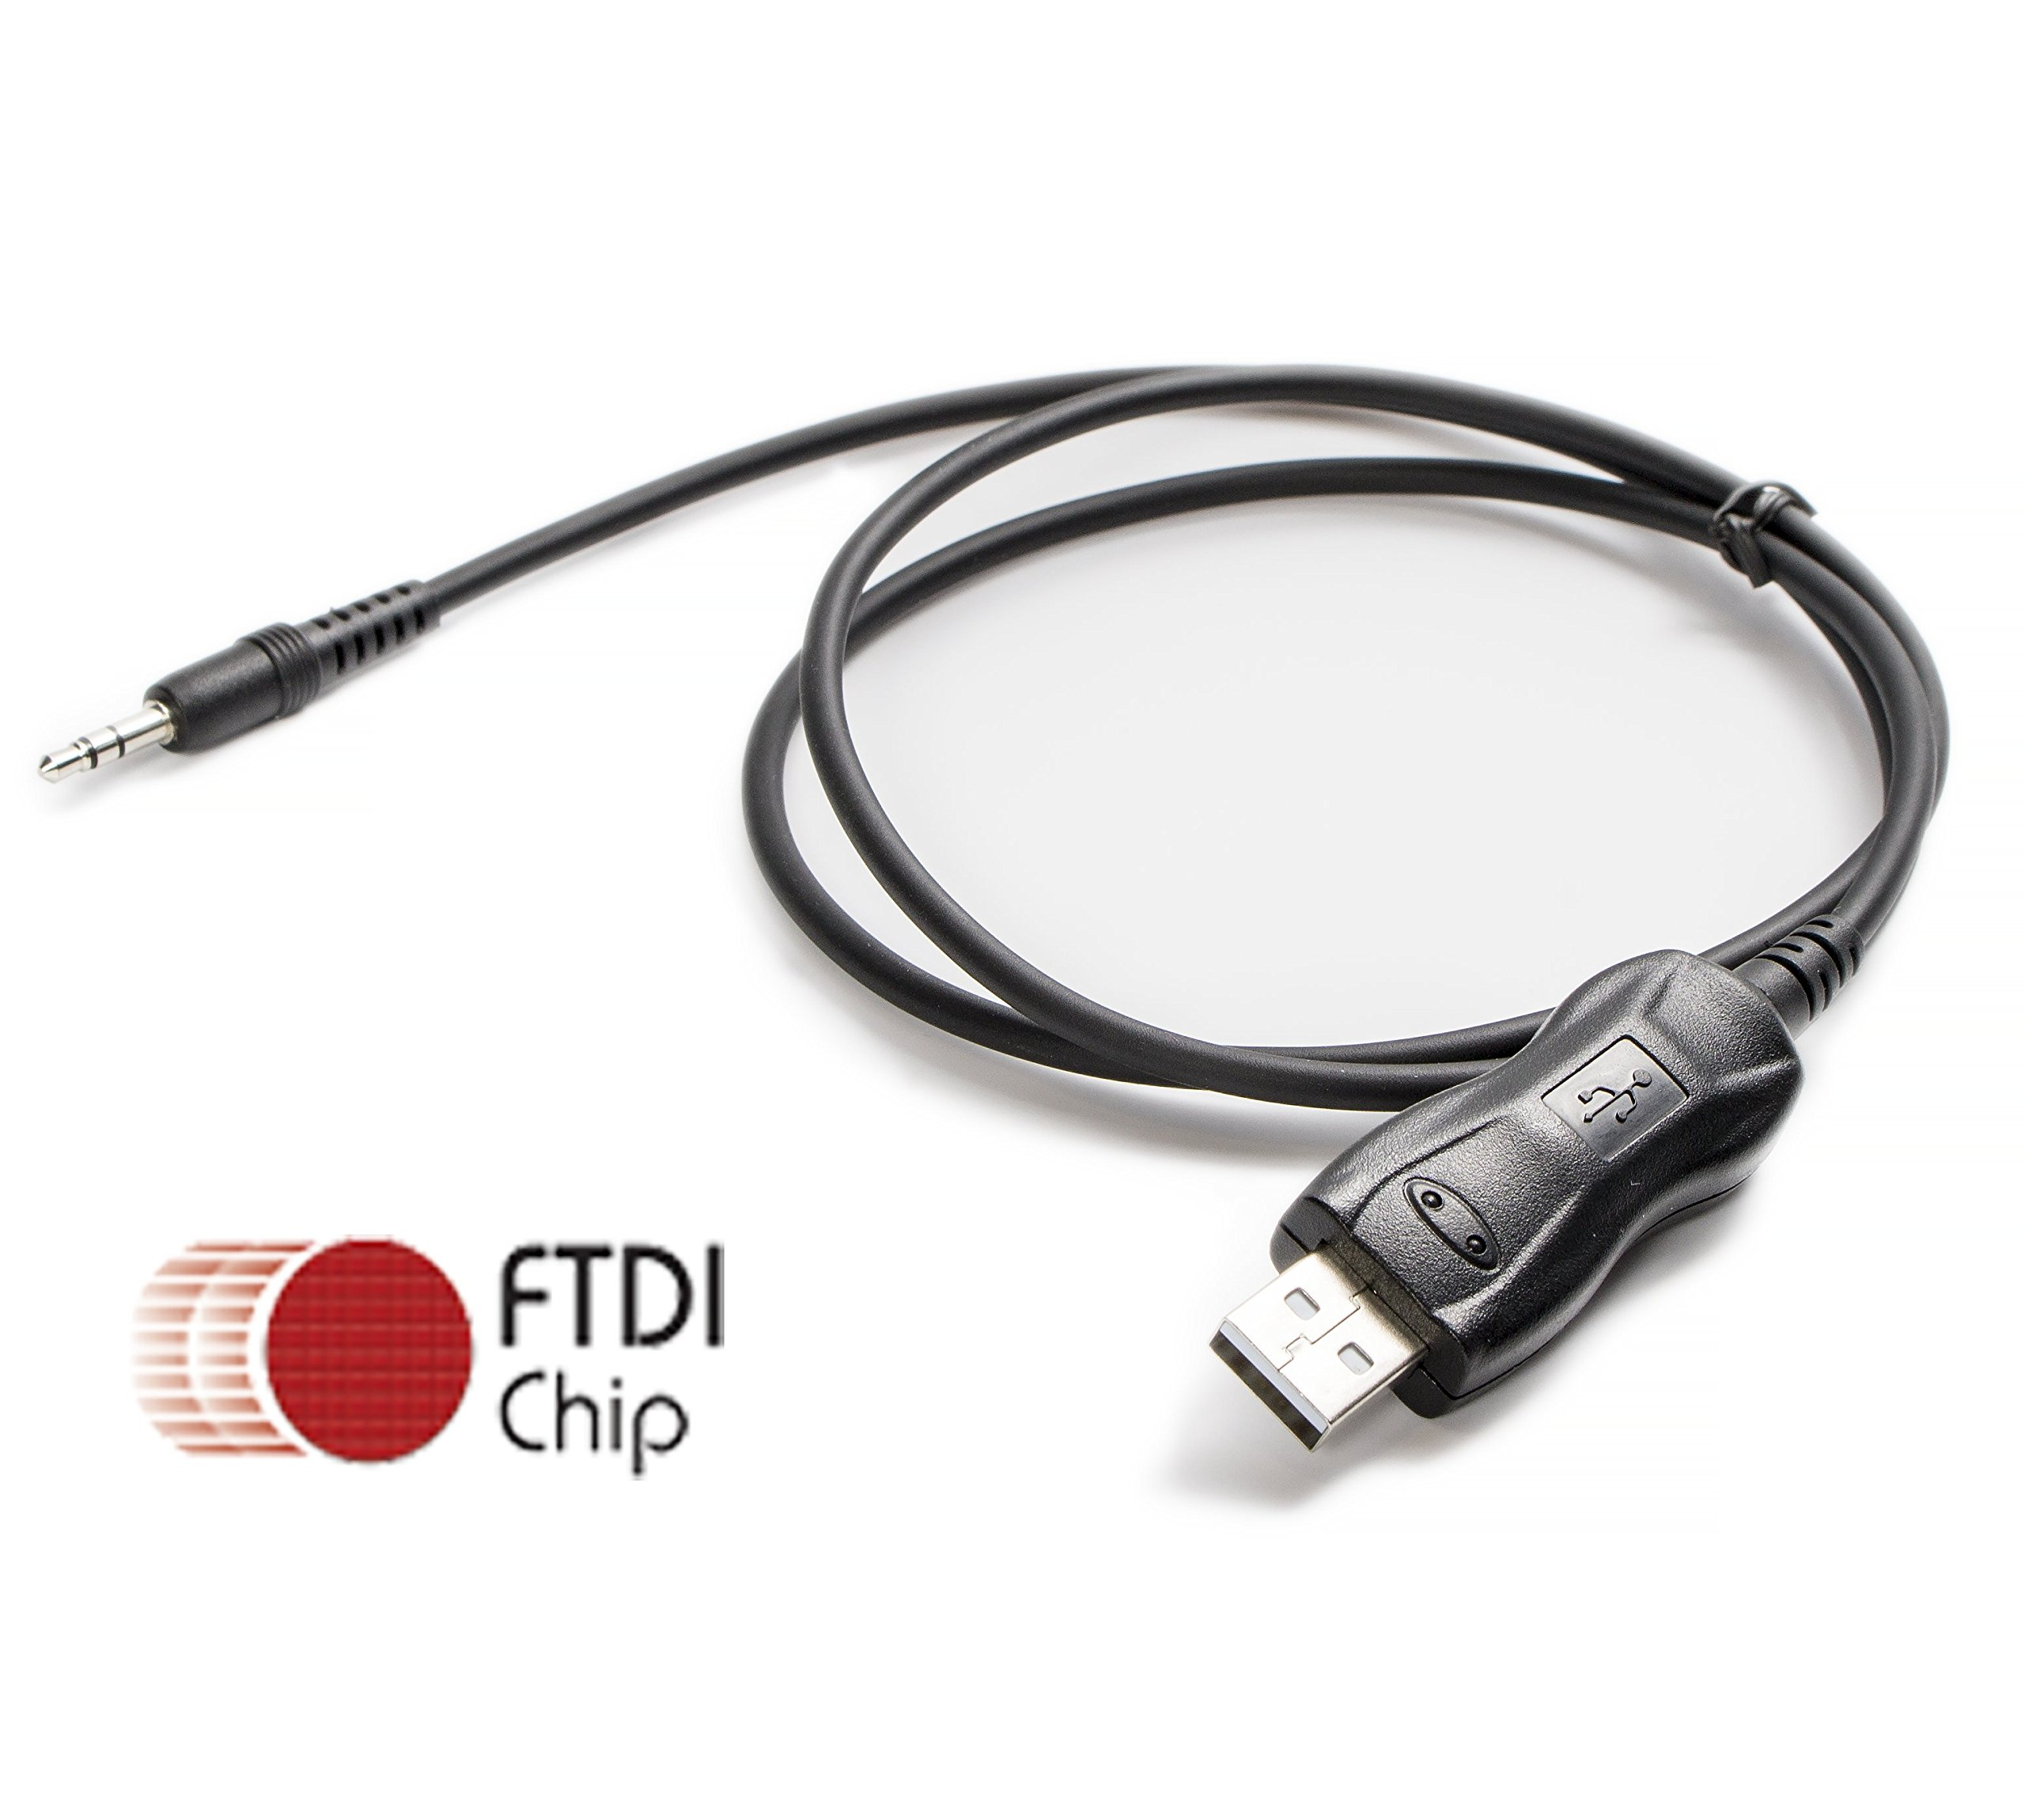 BTECH PC04 FTDI USB Programming Cable for UV-25X2, UV-25X4, UV-50X2